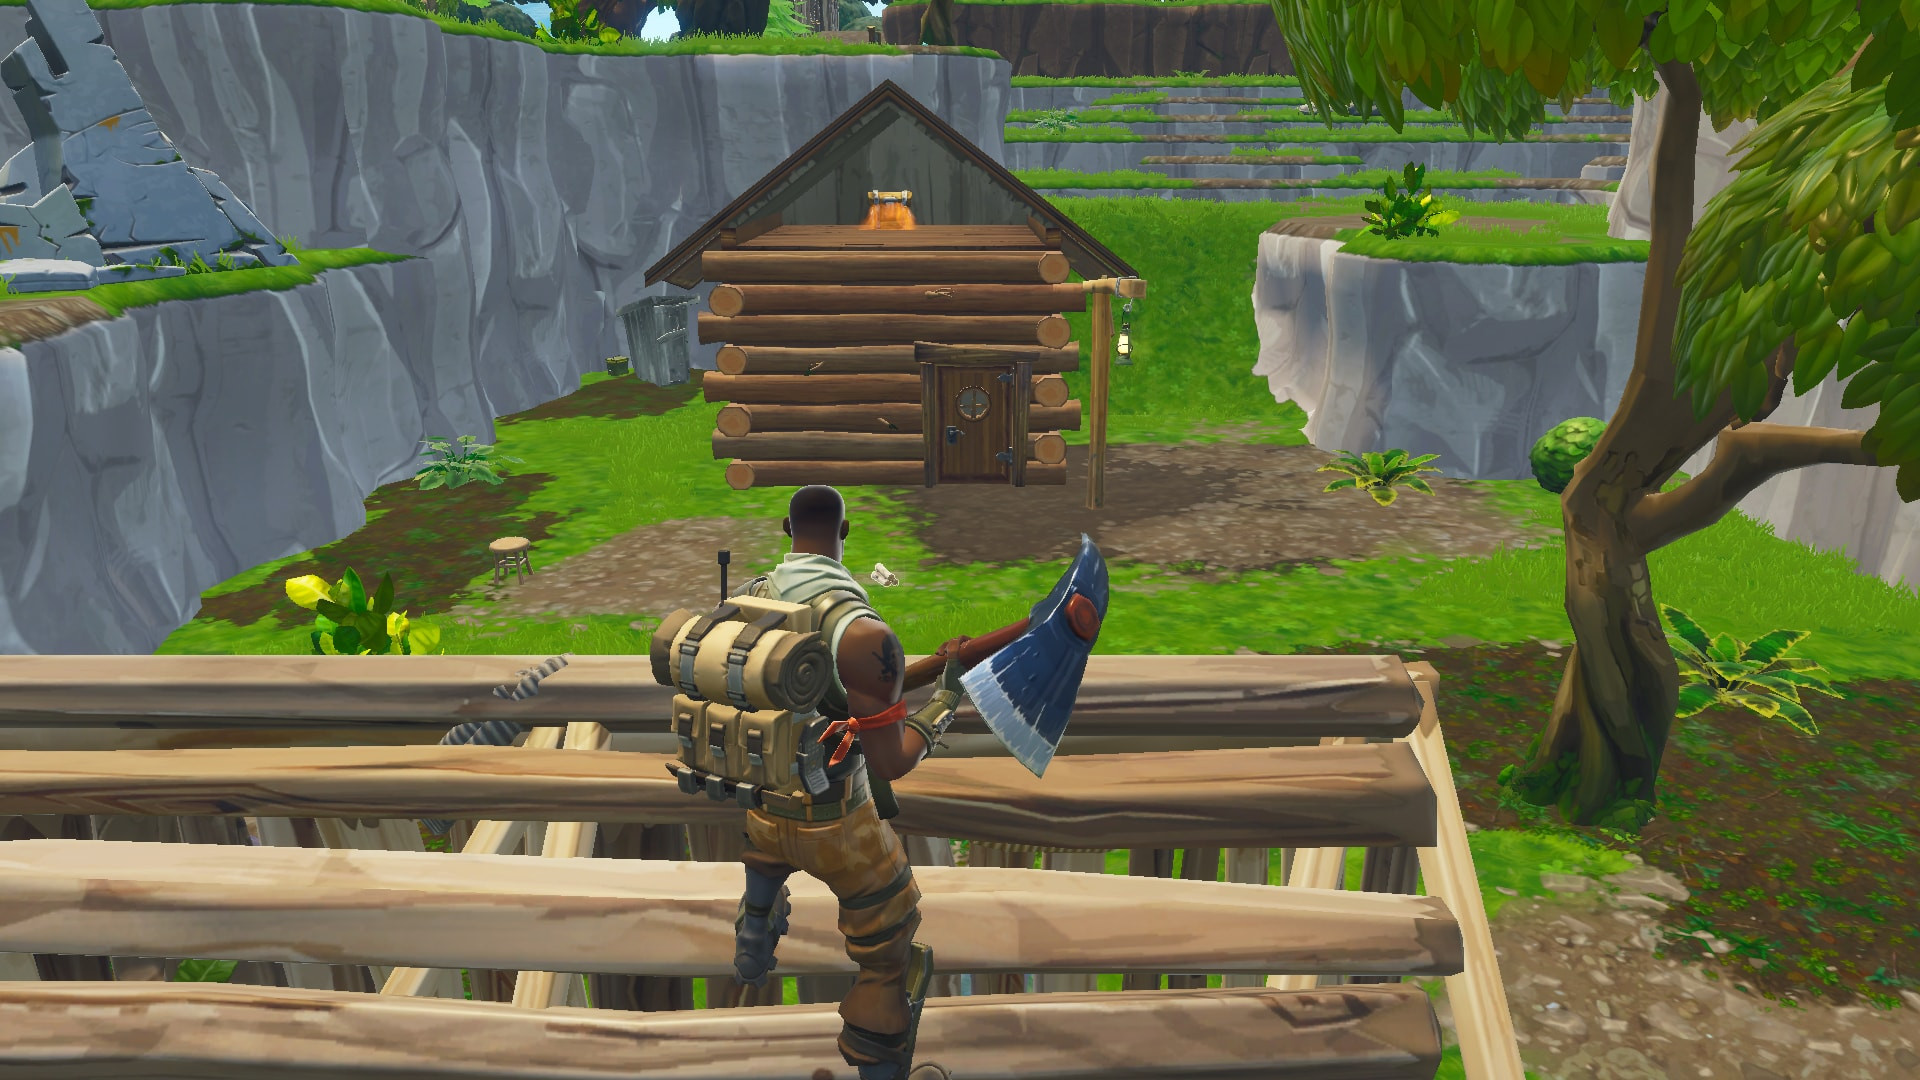 Chest Location 5 in Lonely Lodge | Fortnite - zilliongamer your game guide